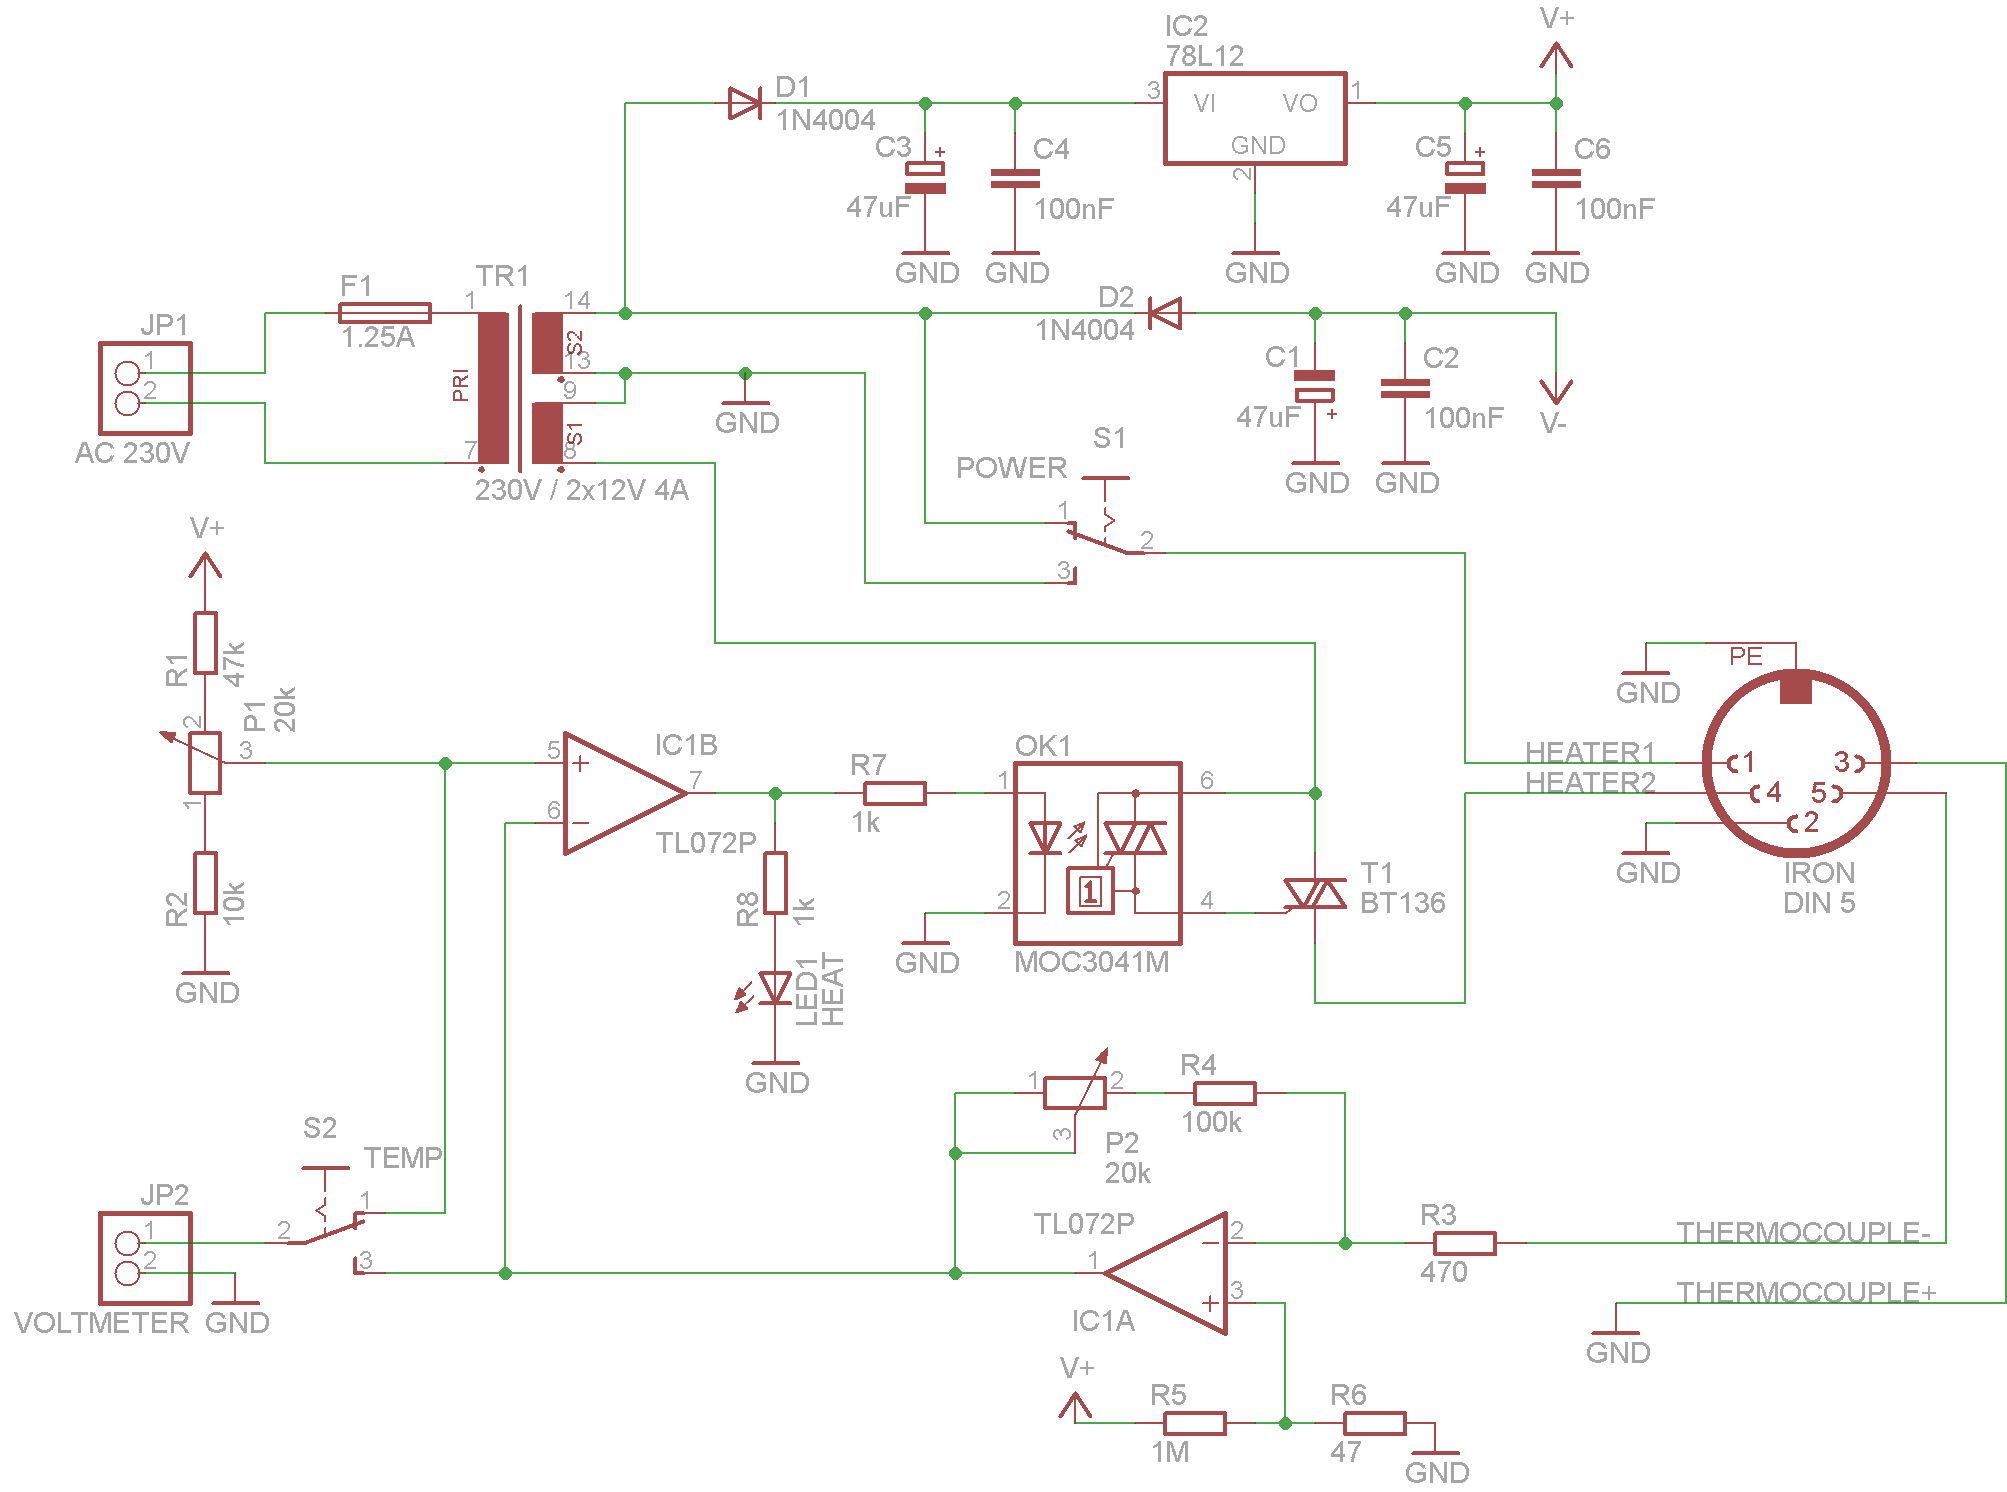 Schematic Soldering Iron Wiring Diagram | my pin's in 2019 ... on wire form, wire art, wire frame, wire icon, wire project, wire display, wire code, wire words, wire work, wire order, wire chart, wire end, wire schematic, wire light, wire cartoon, wire tools, wire drawing, wire links, wire list, wire color,